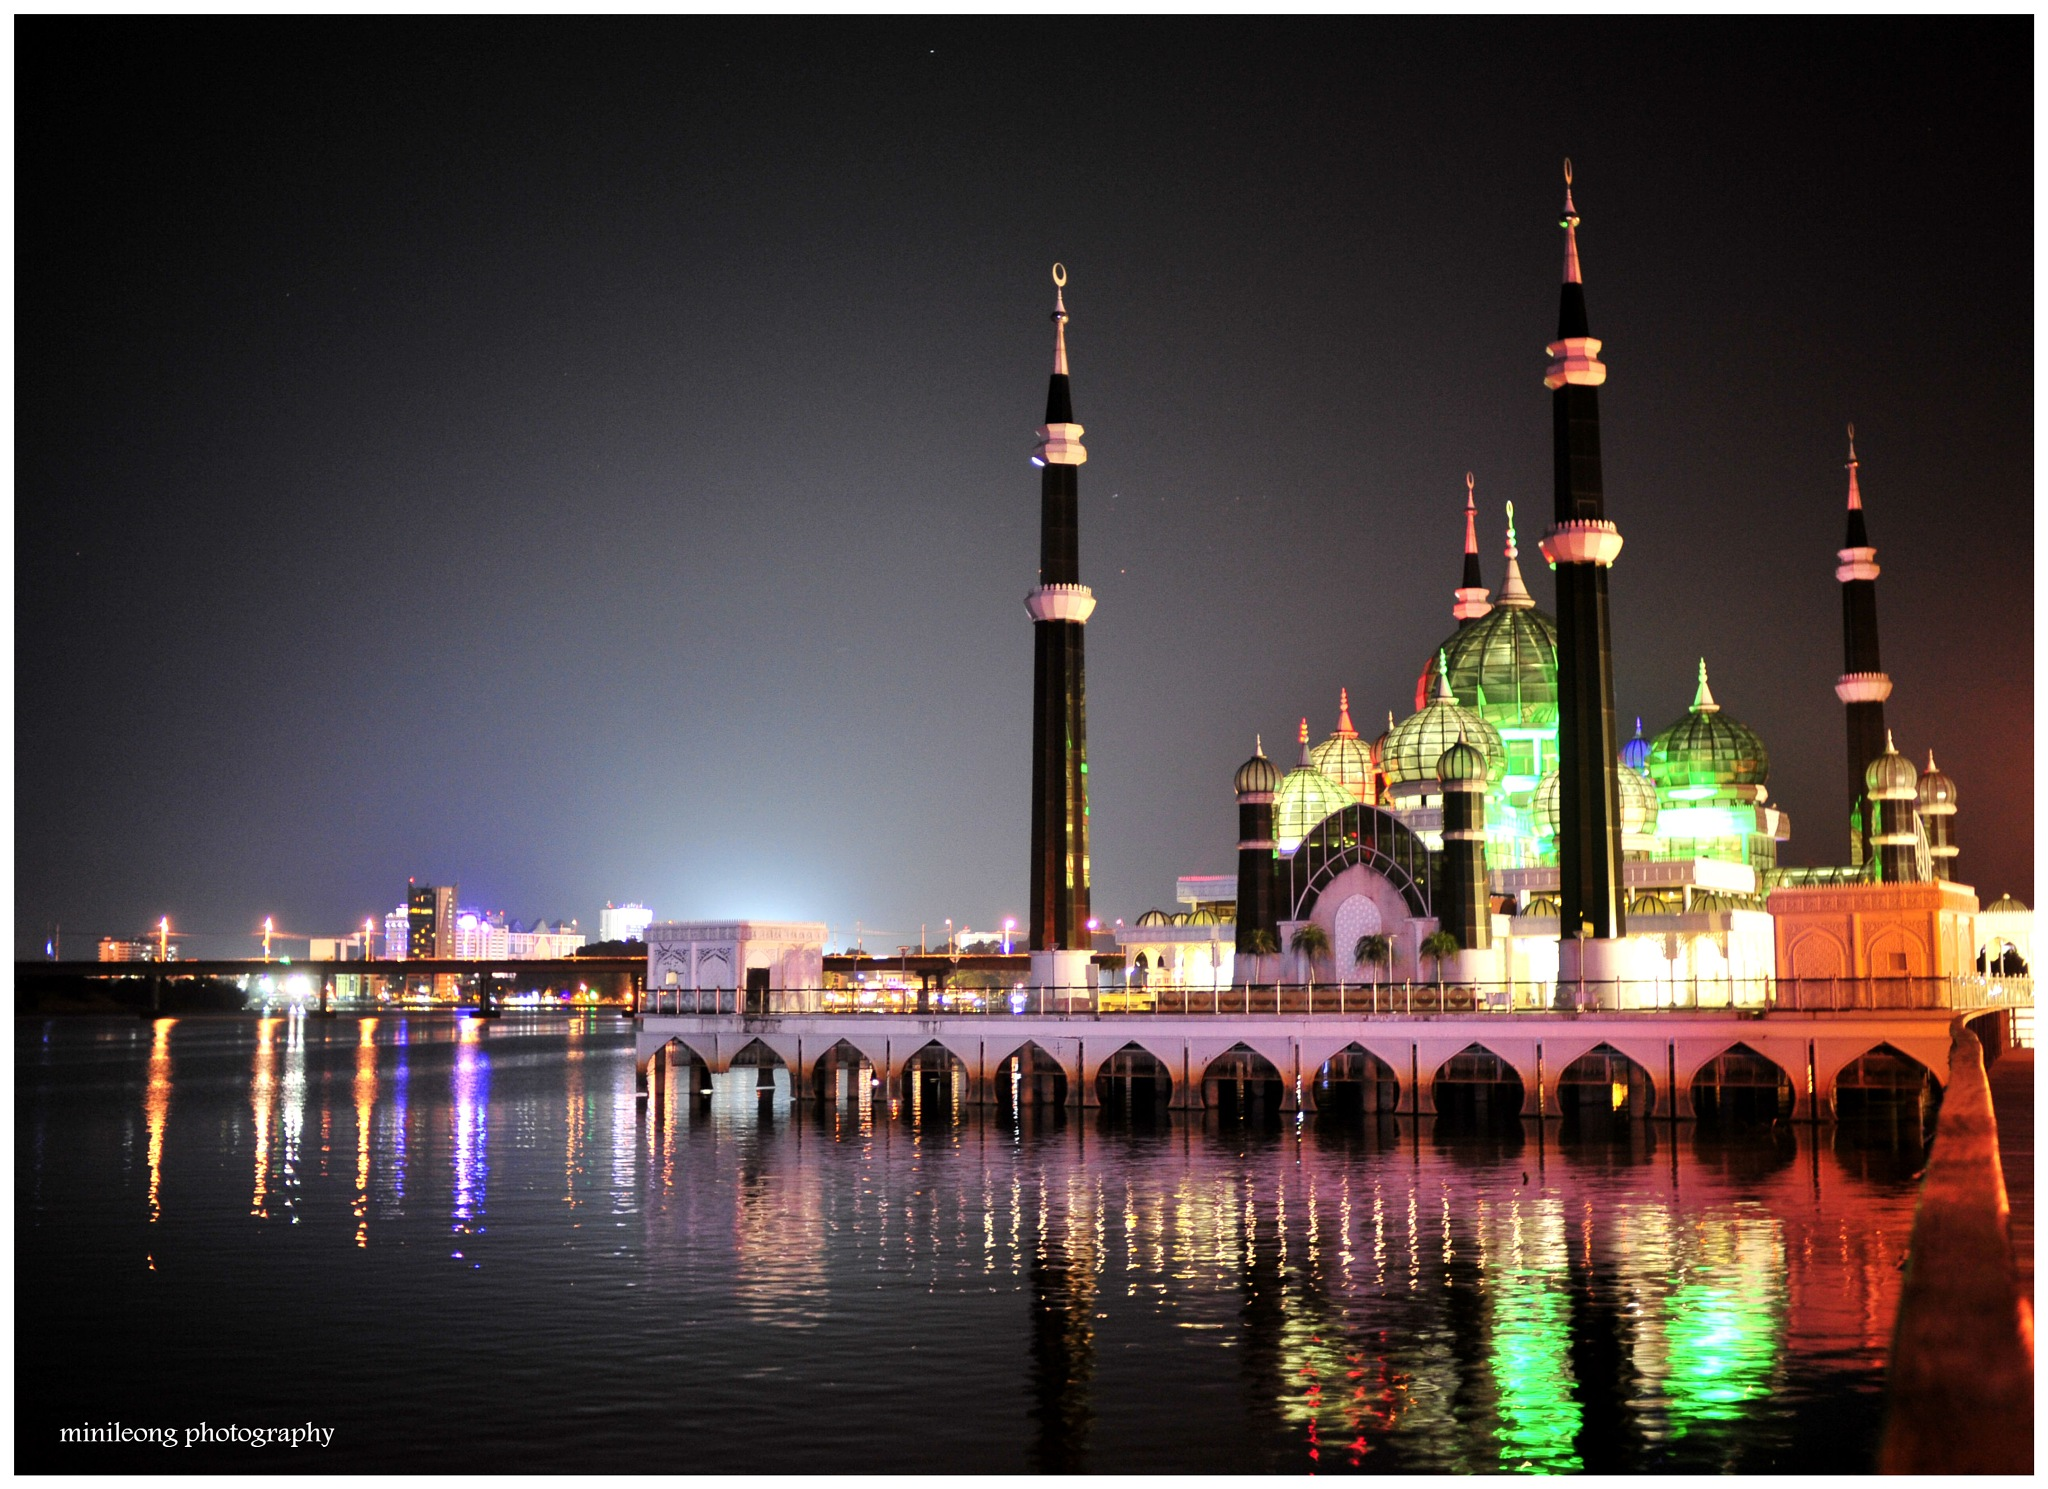 Beauty of Malaysia 02: Floating Crystal Mosque by minileong